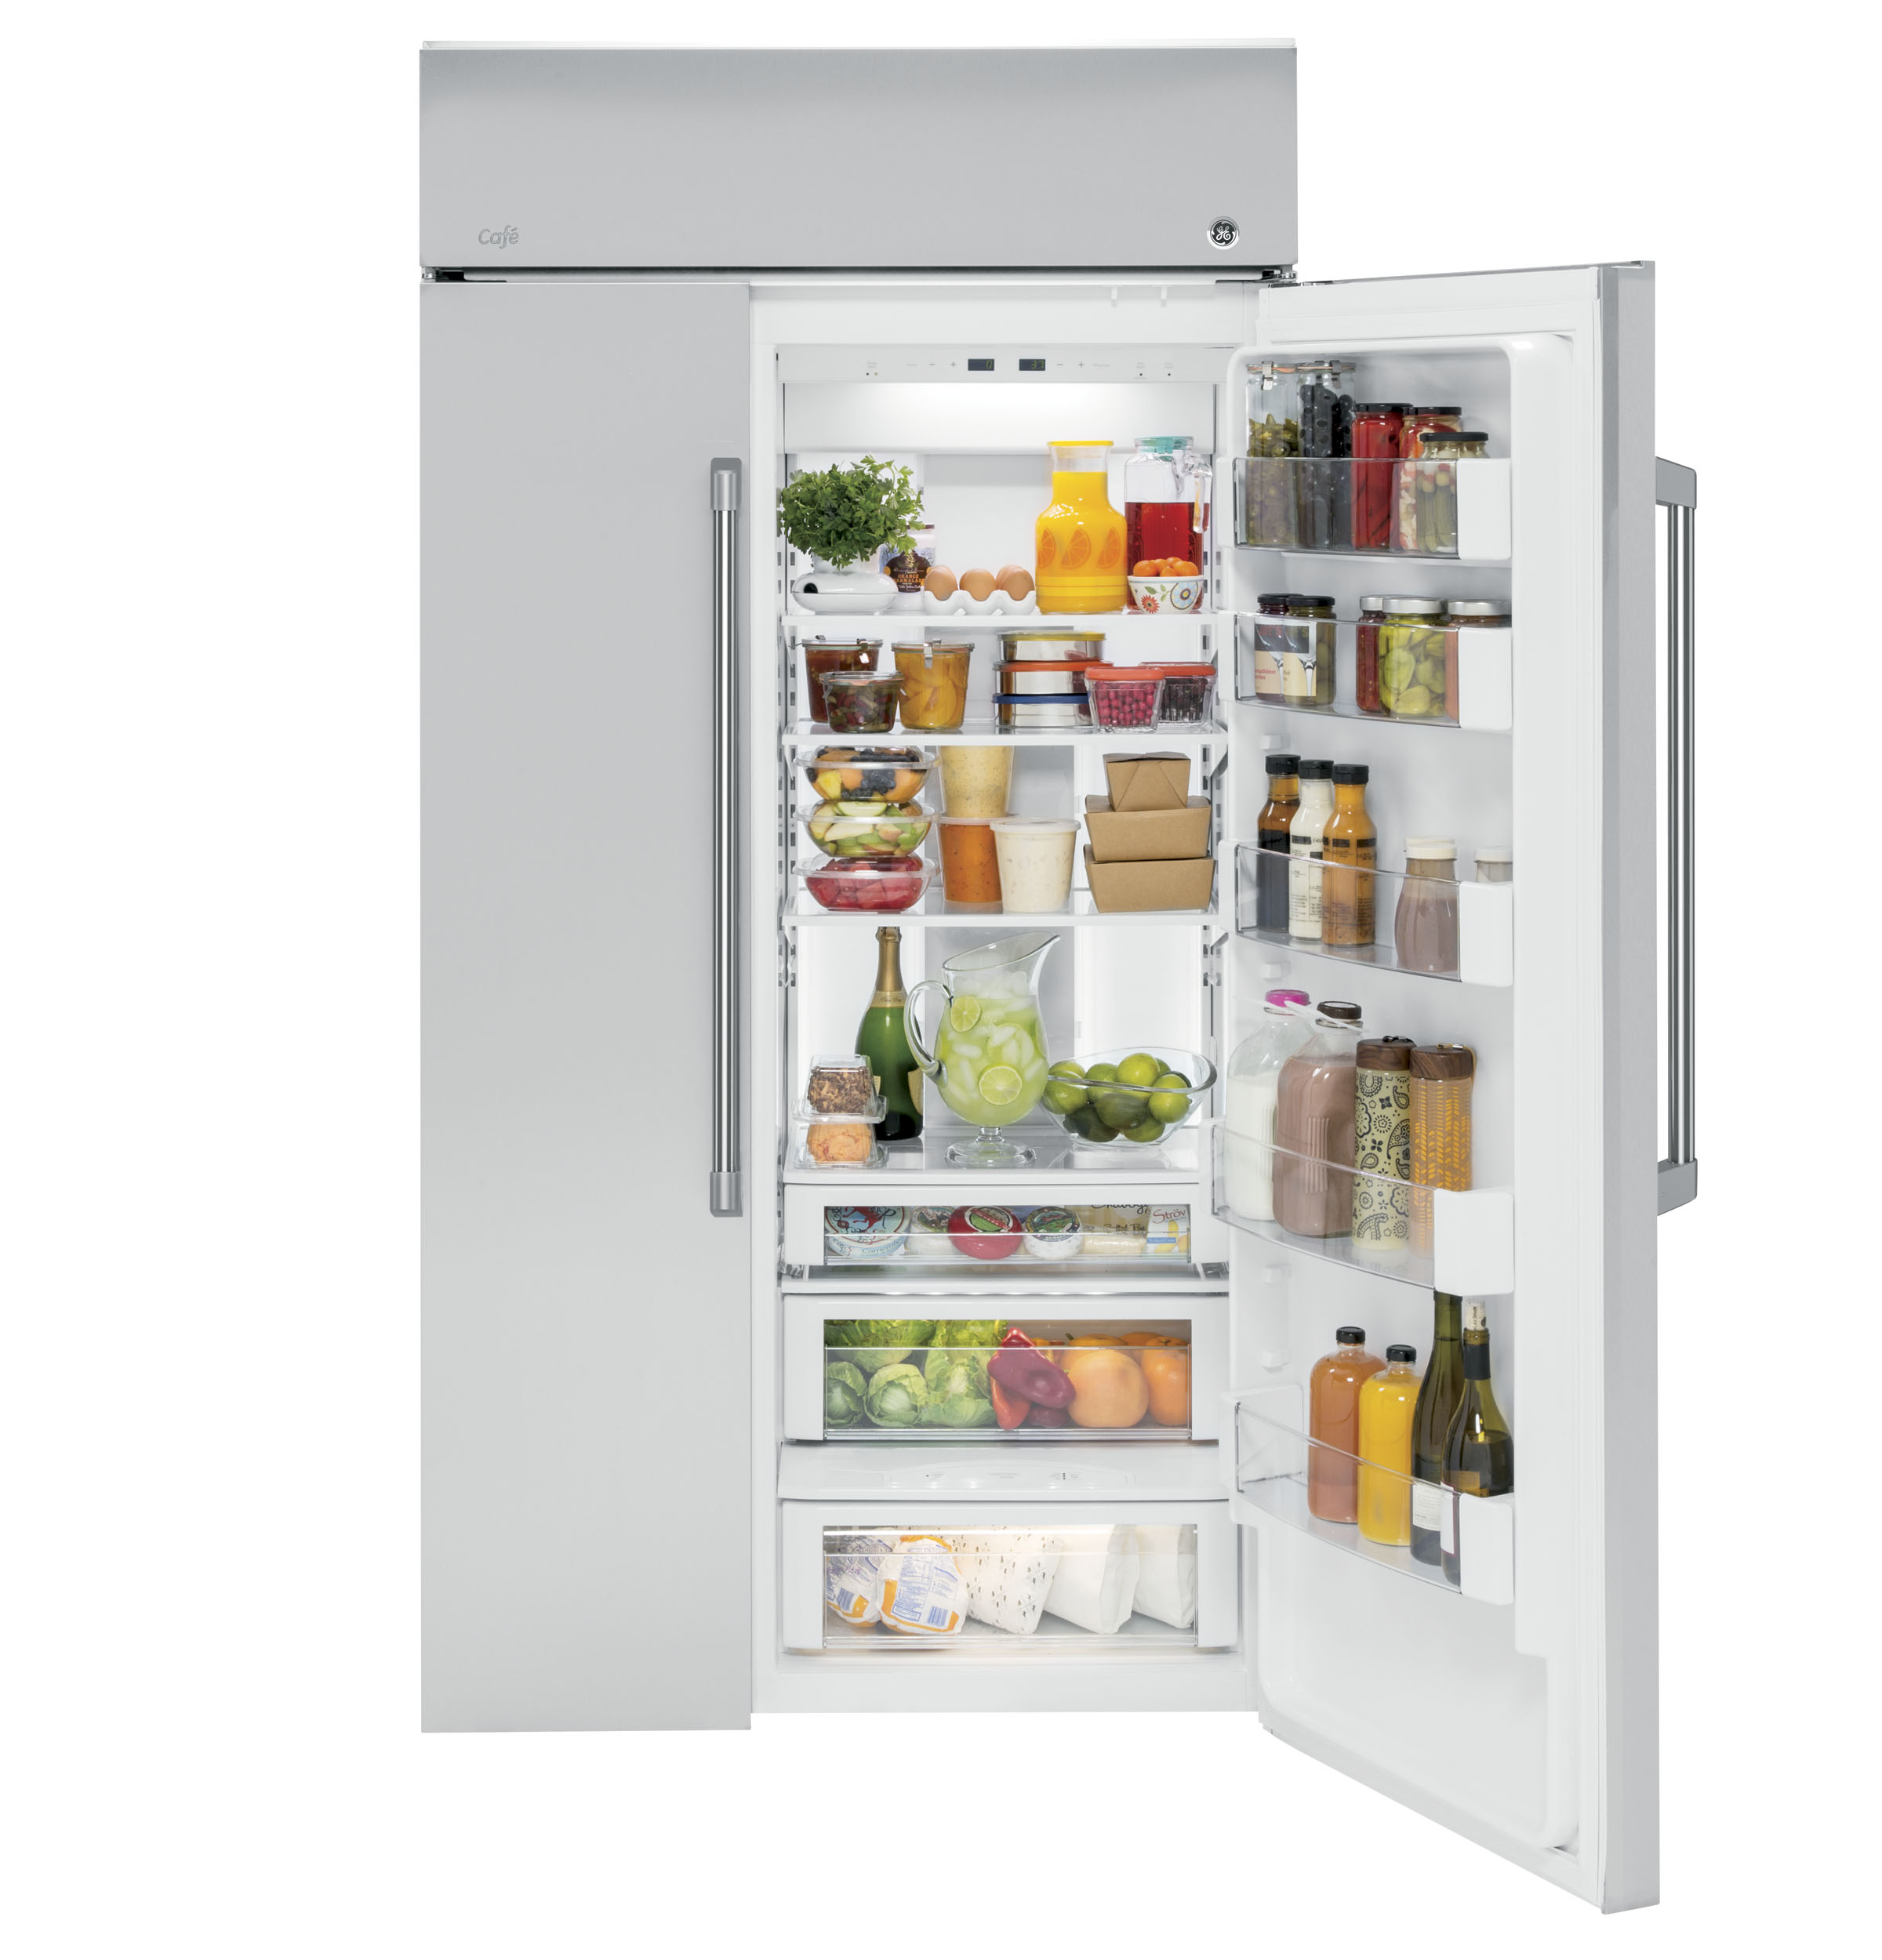 Side by side integrated fridge freezer - Product Image Product Image